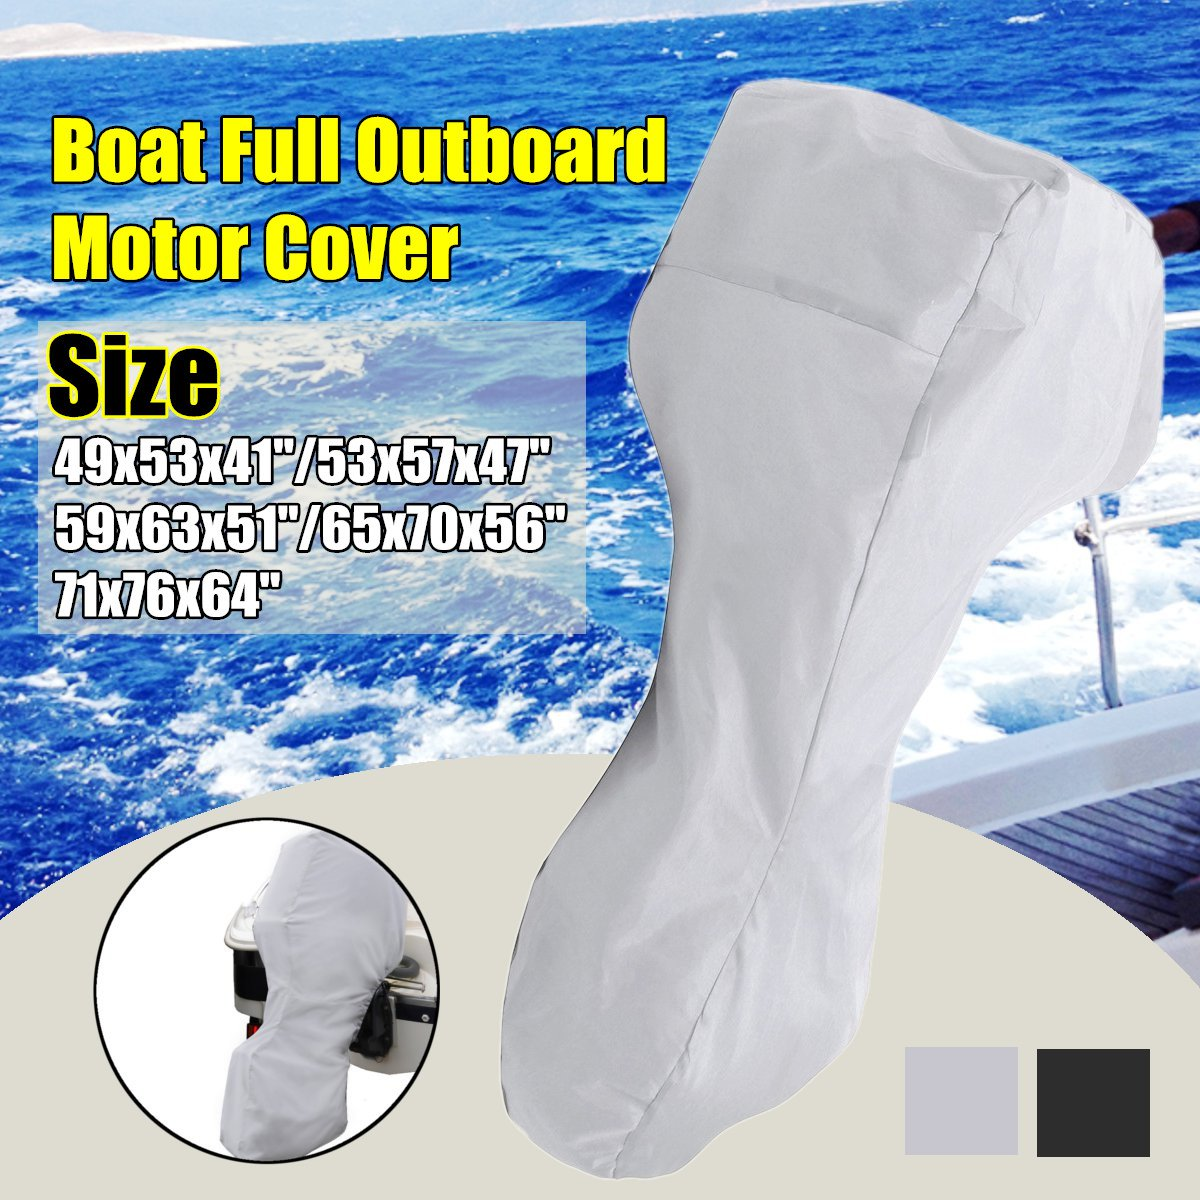 60-90HP Boat Full Motor Cover Outboard Engine Protector for 60-90HP Boat Motors Black/Silver Waterproof Oxford Cloth 5 Sizes image